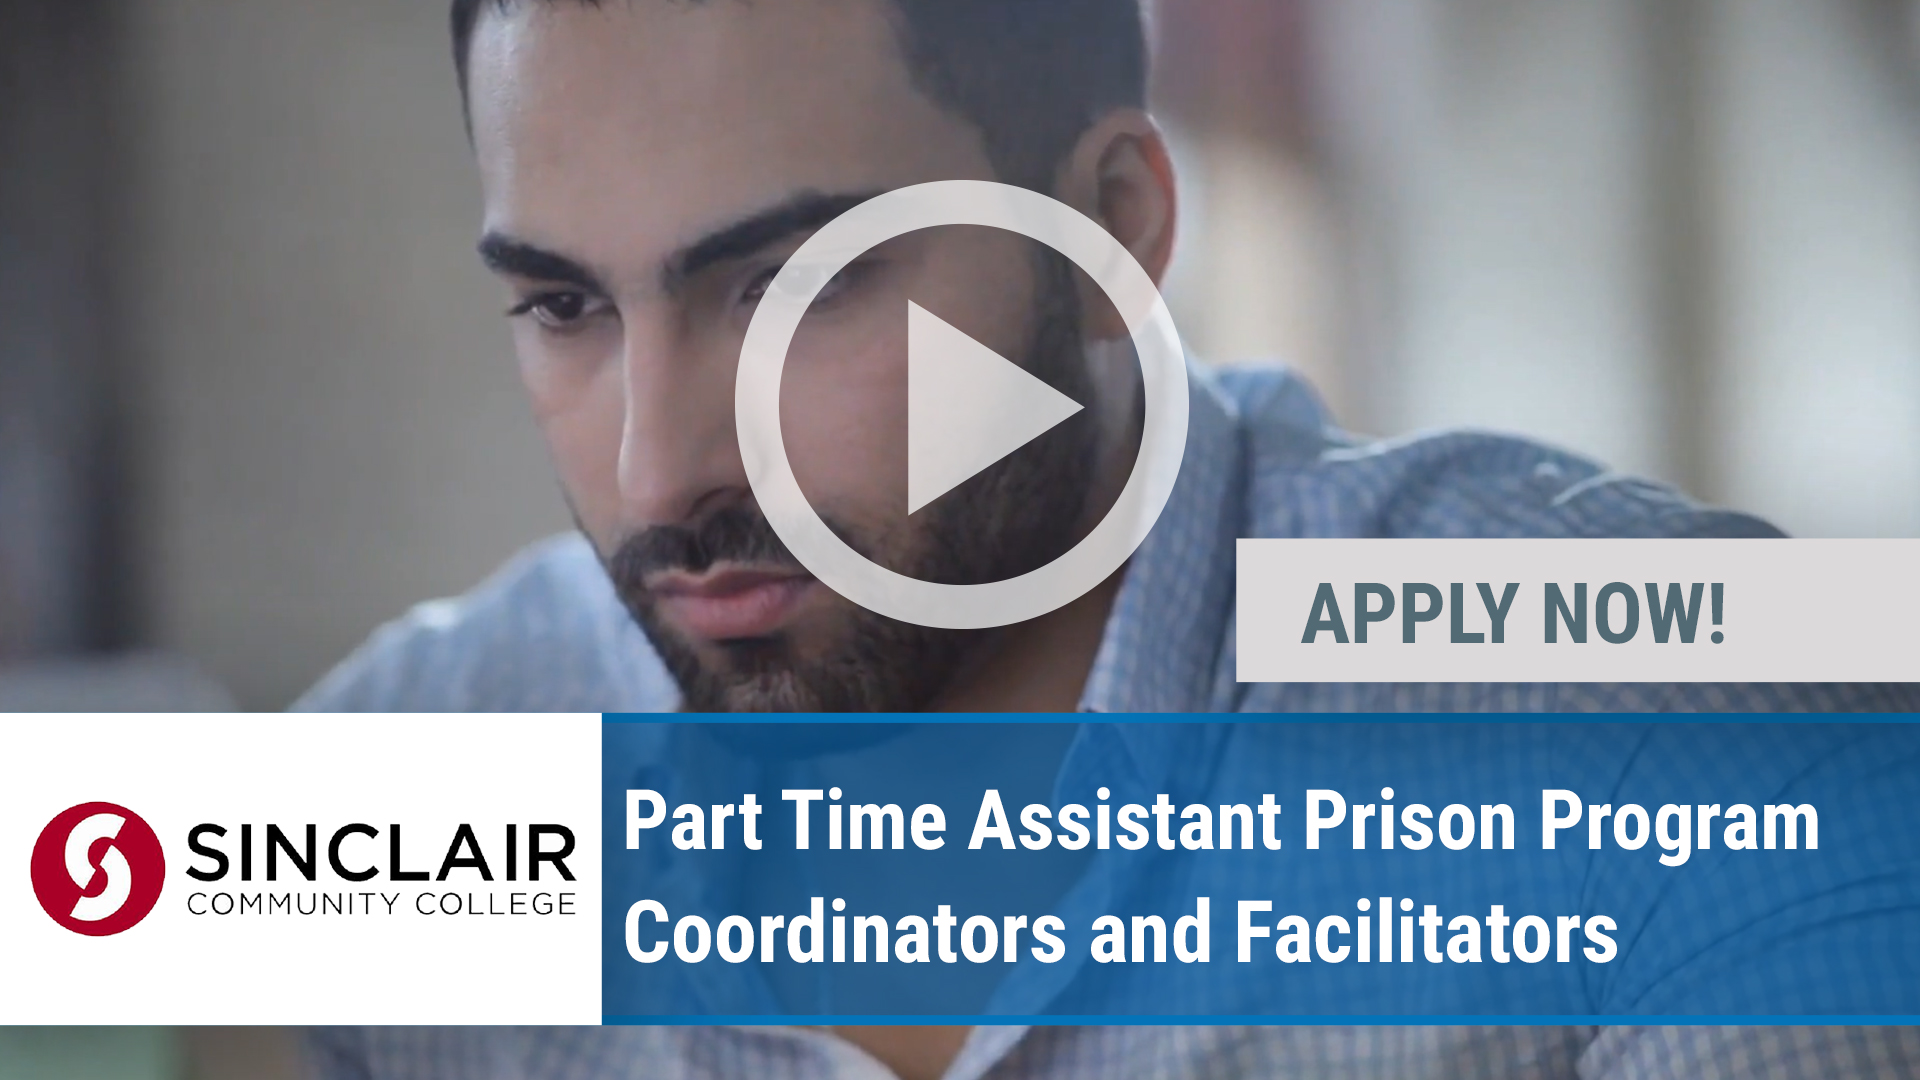 Watch our careers video for available job opening Part Time Assistant Prison Program Coordinators a in Dayton, OH